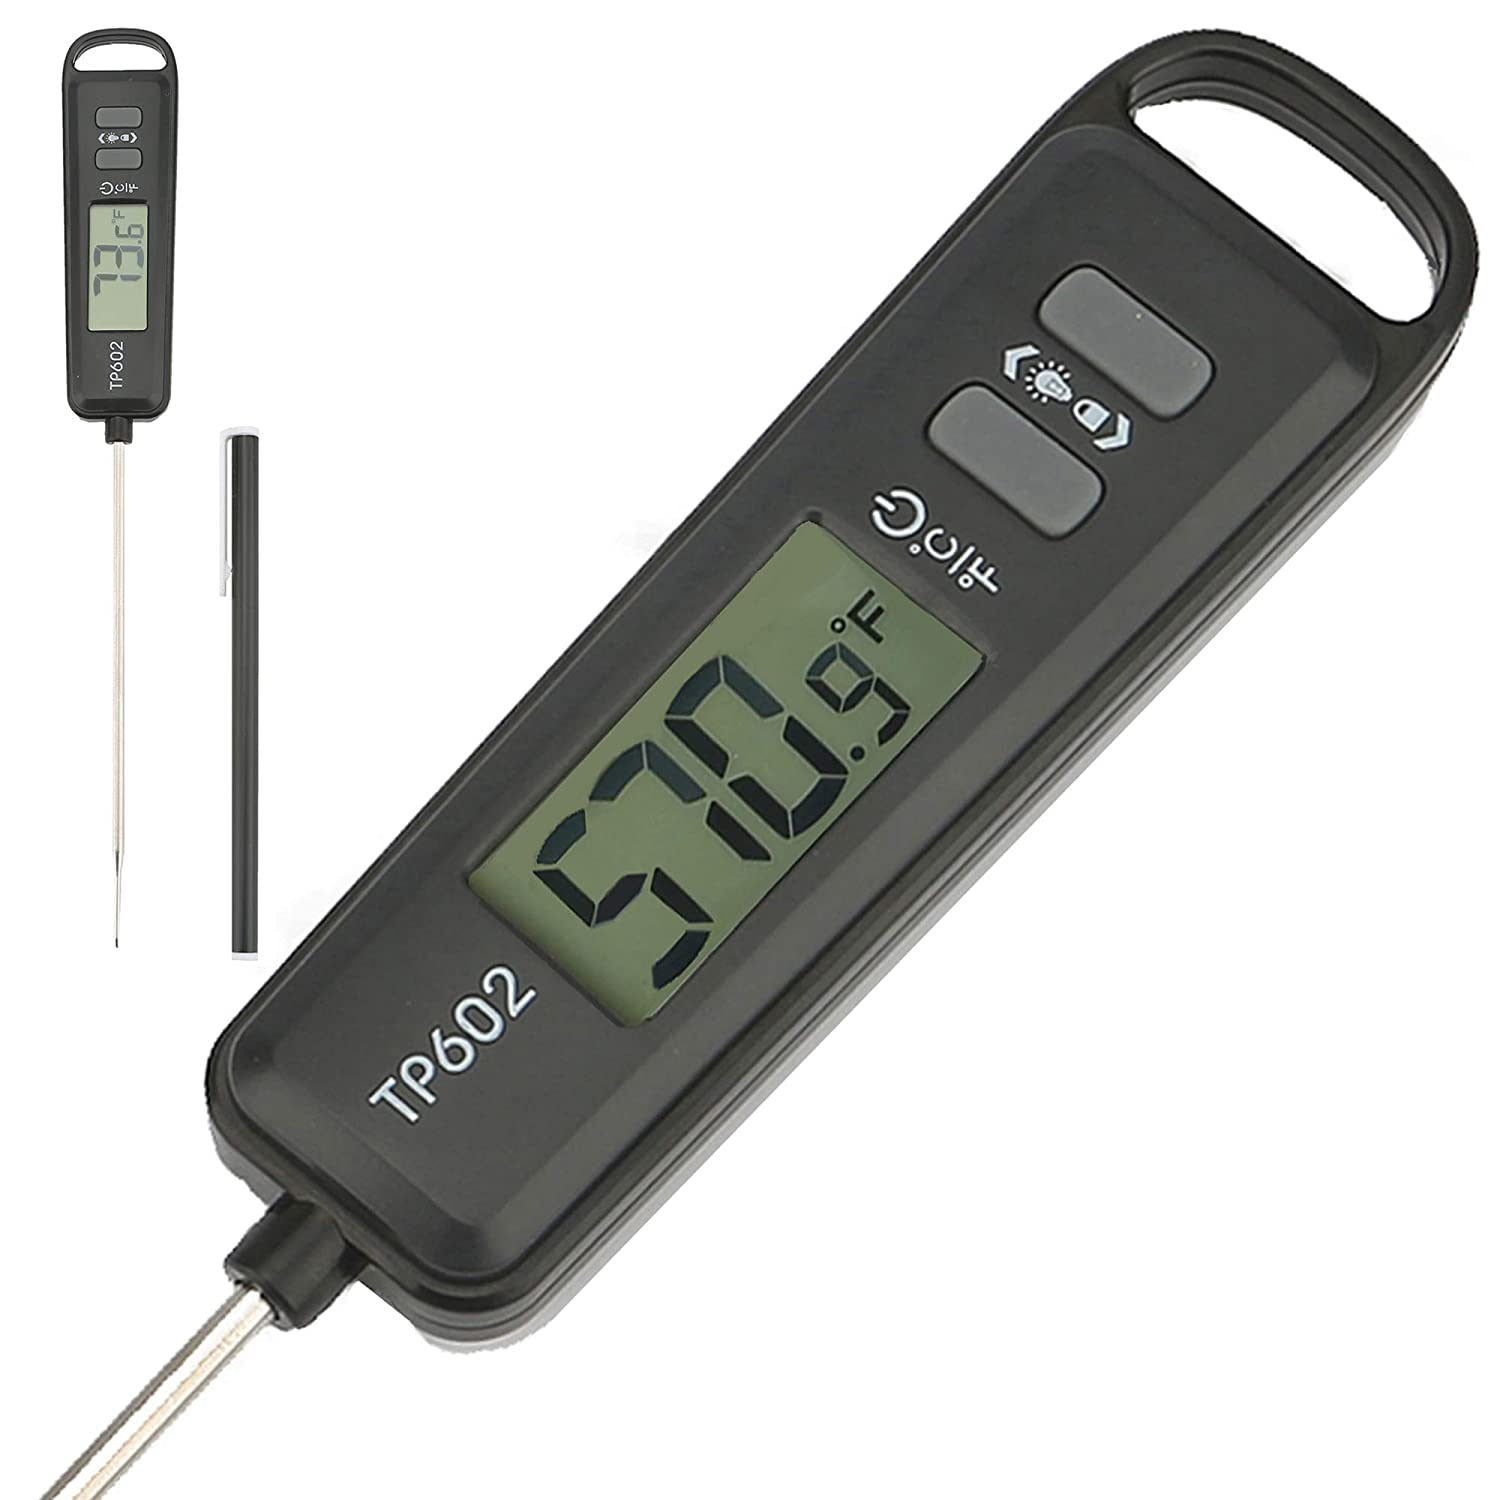 REJOL LCD Backlight Display Screen Instant Read Digital Cooking Food Thermometer, 5 Inch Long Probe Meat Thermometer for Frying Oil Baking BBQ Grill Smoker Liquid Temperature Accurate Reading, Black